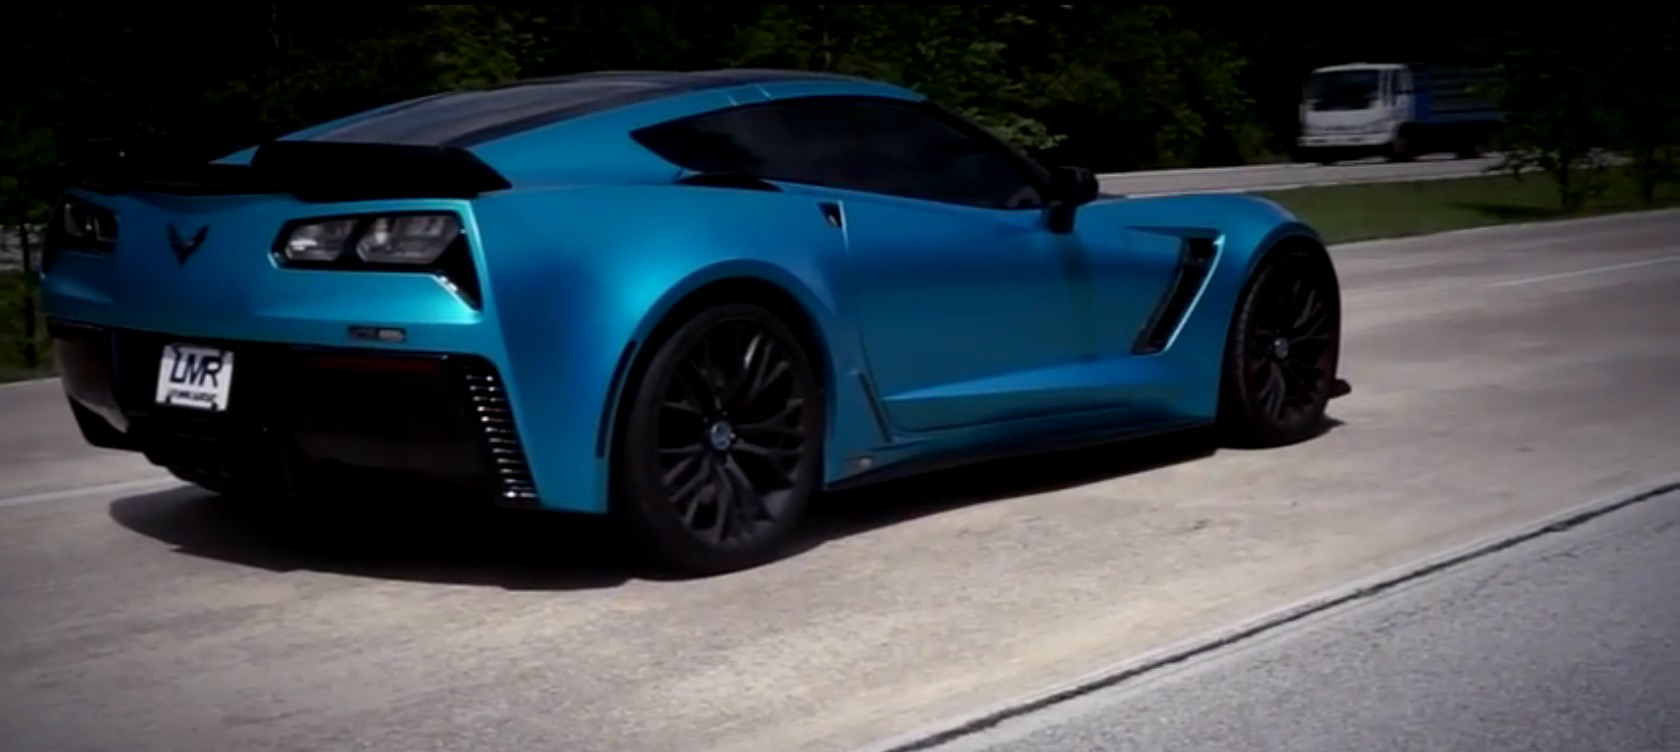 Lmr C7 Corvette Z06 Stage Ii Churns Out 1 017 Rwhp